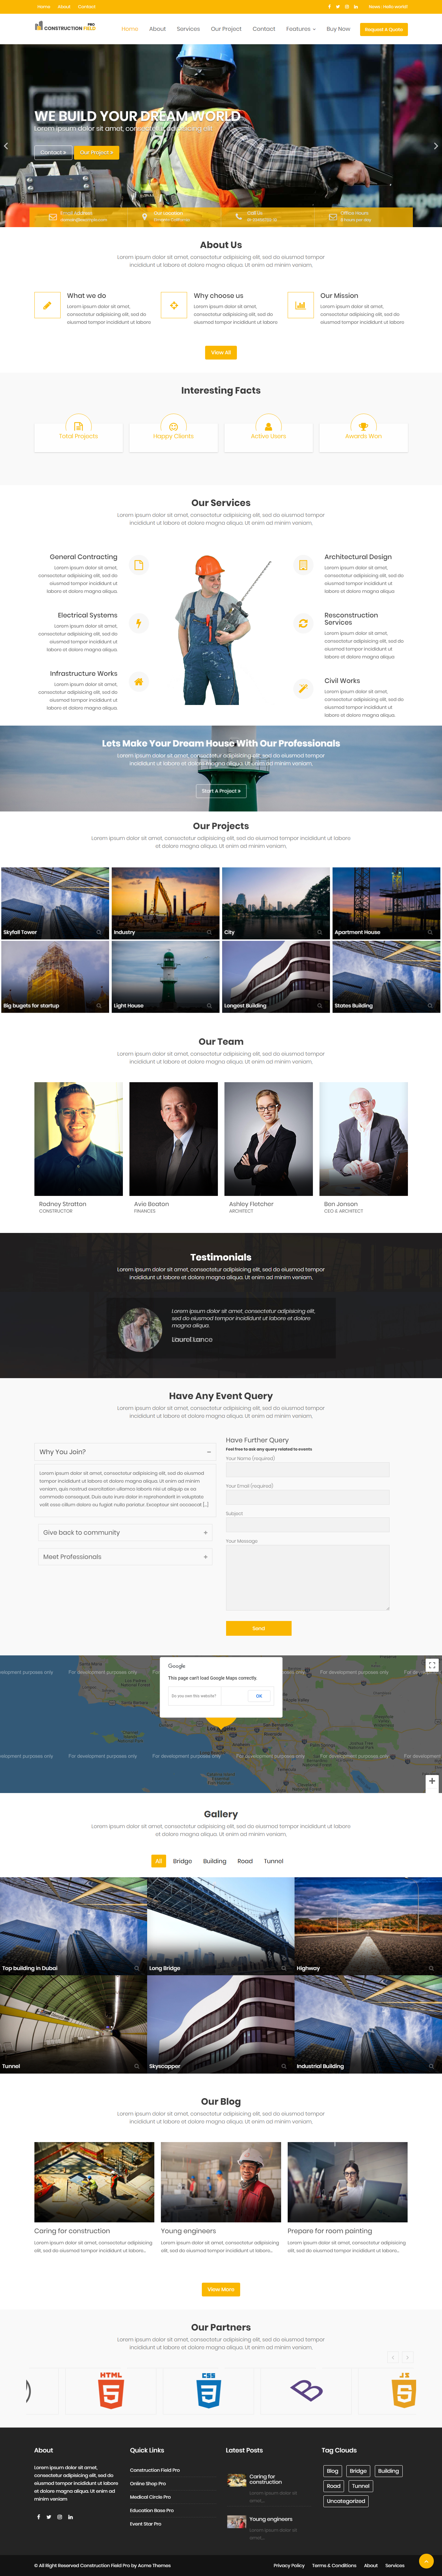 Construction Field Pro - Best Premium Construction Business Company WordPress Themes and Templates